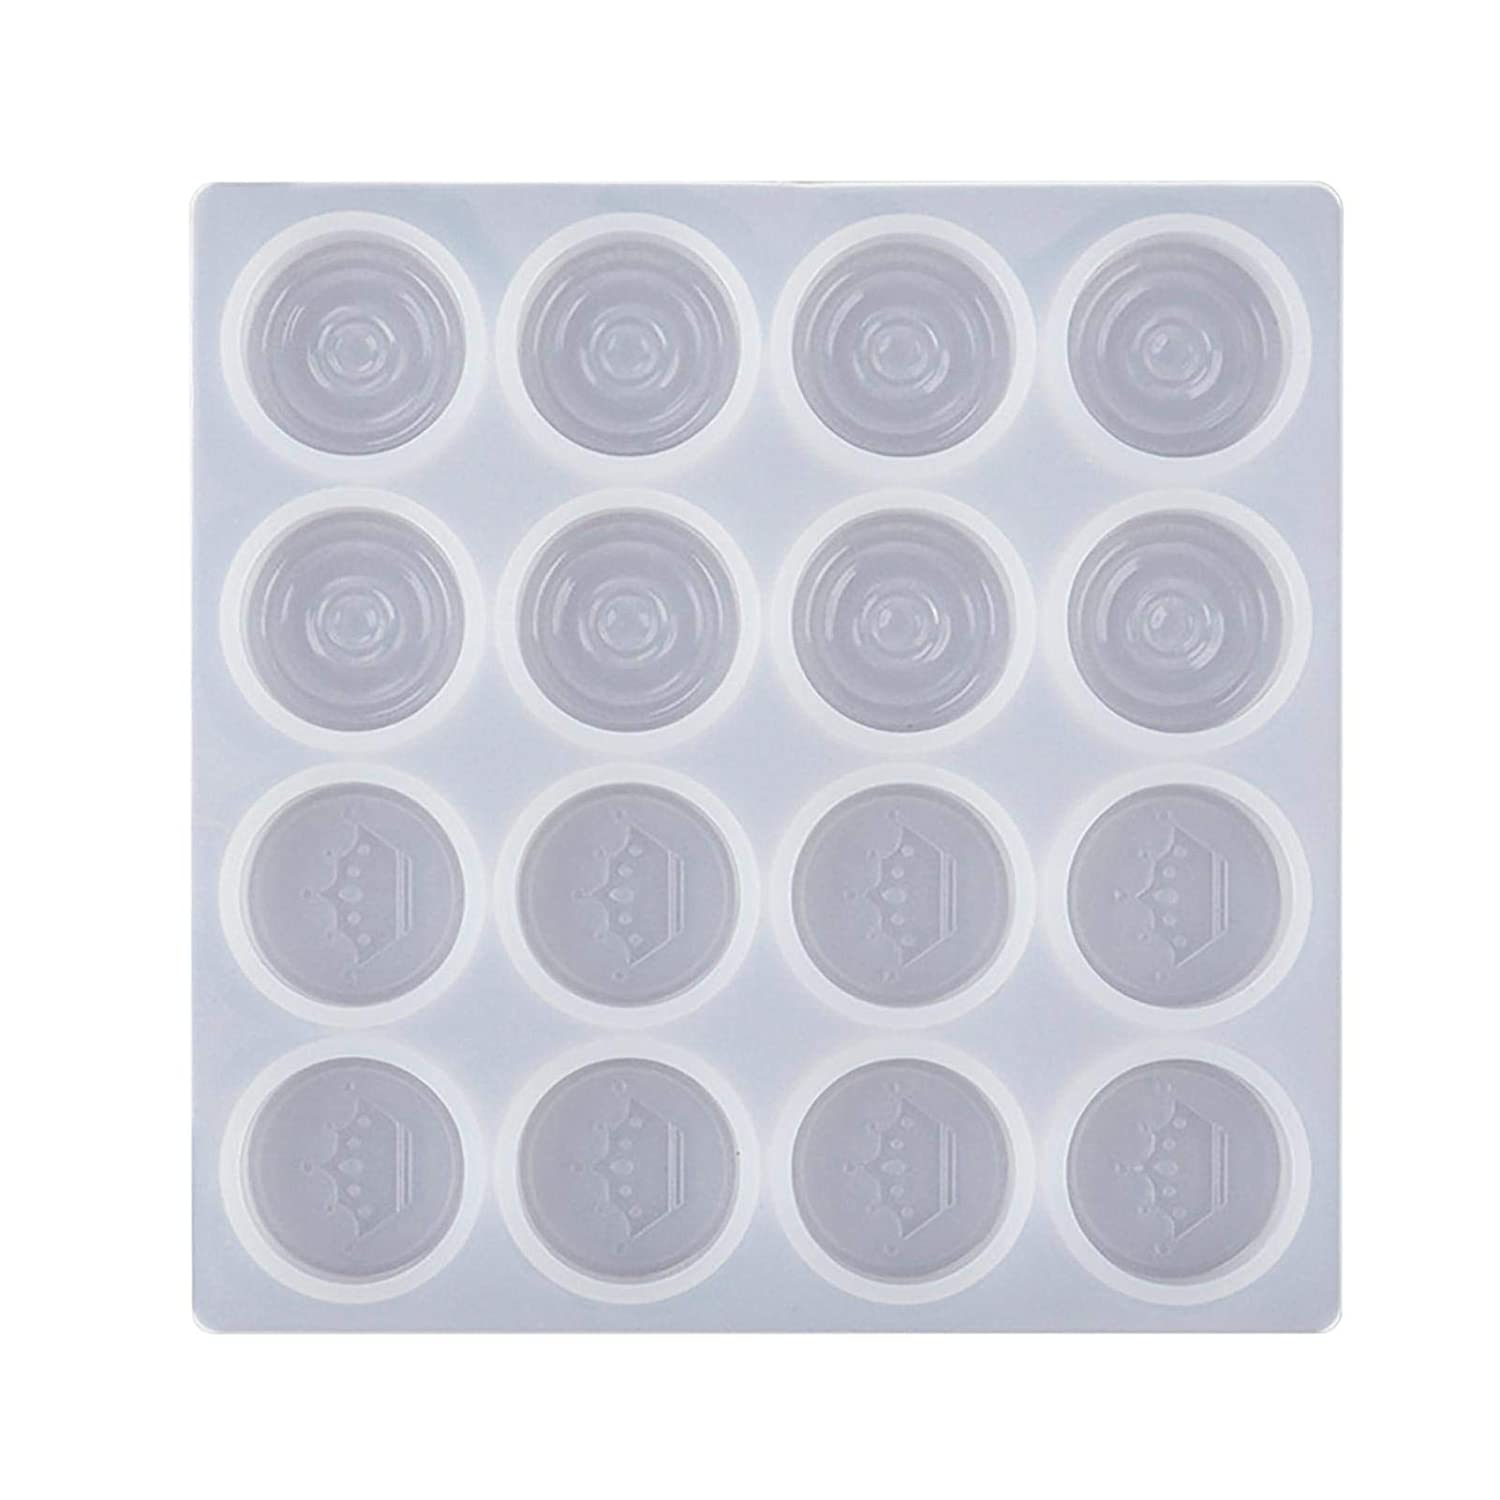 3D Handmade Silicone Mold Set Polymer Clay Resin Baking Mould Chess Board Silicone Mould DIY International Checker Clear Mould Silicone Epoxy Resin Molds